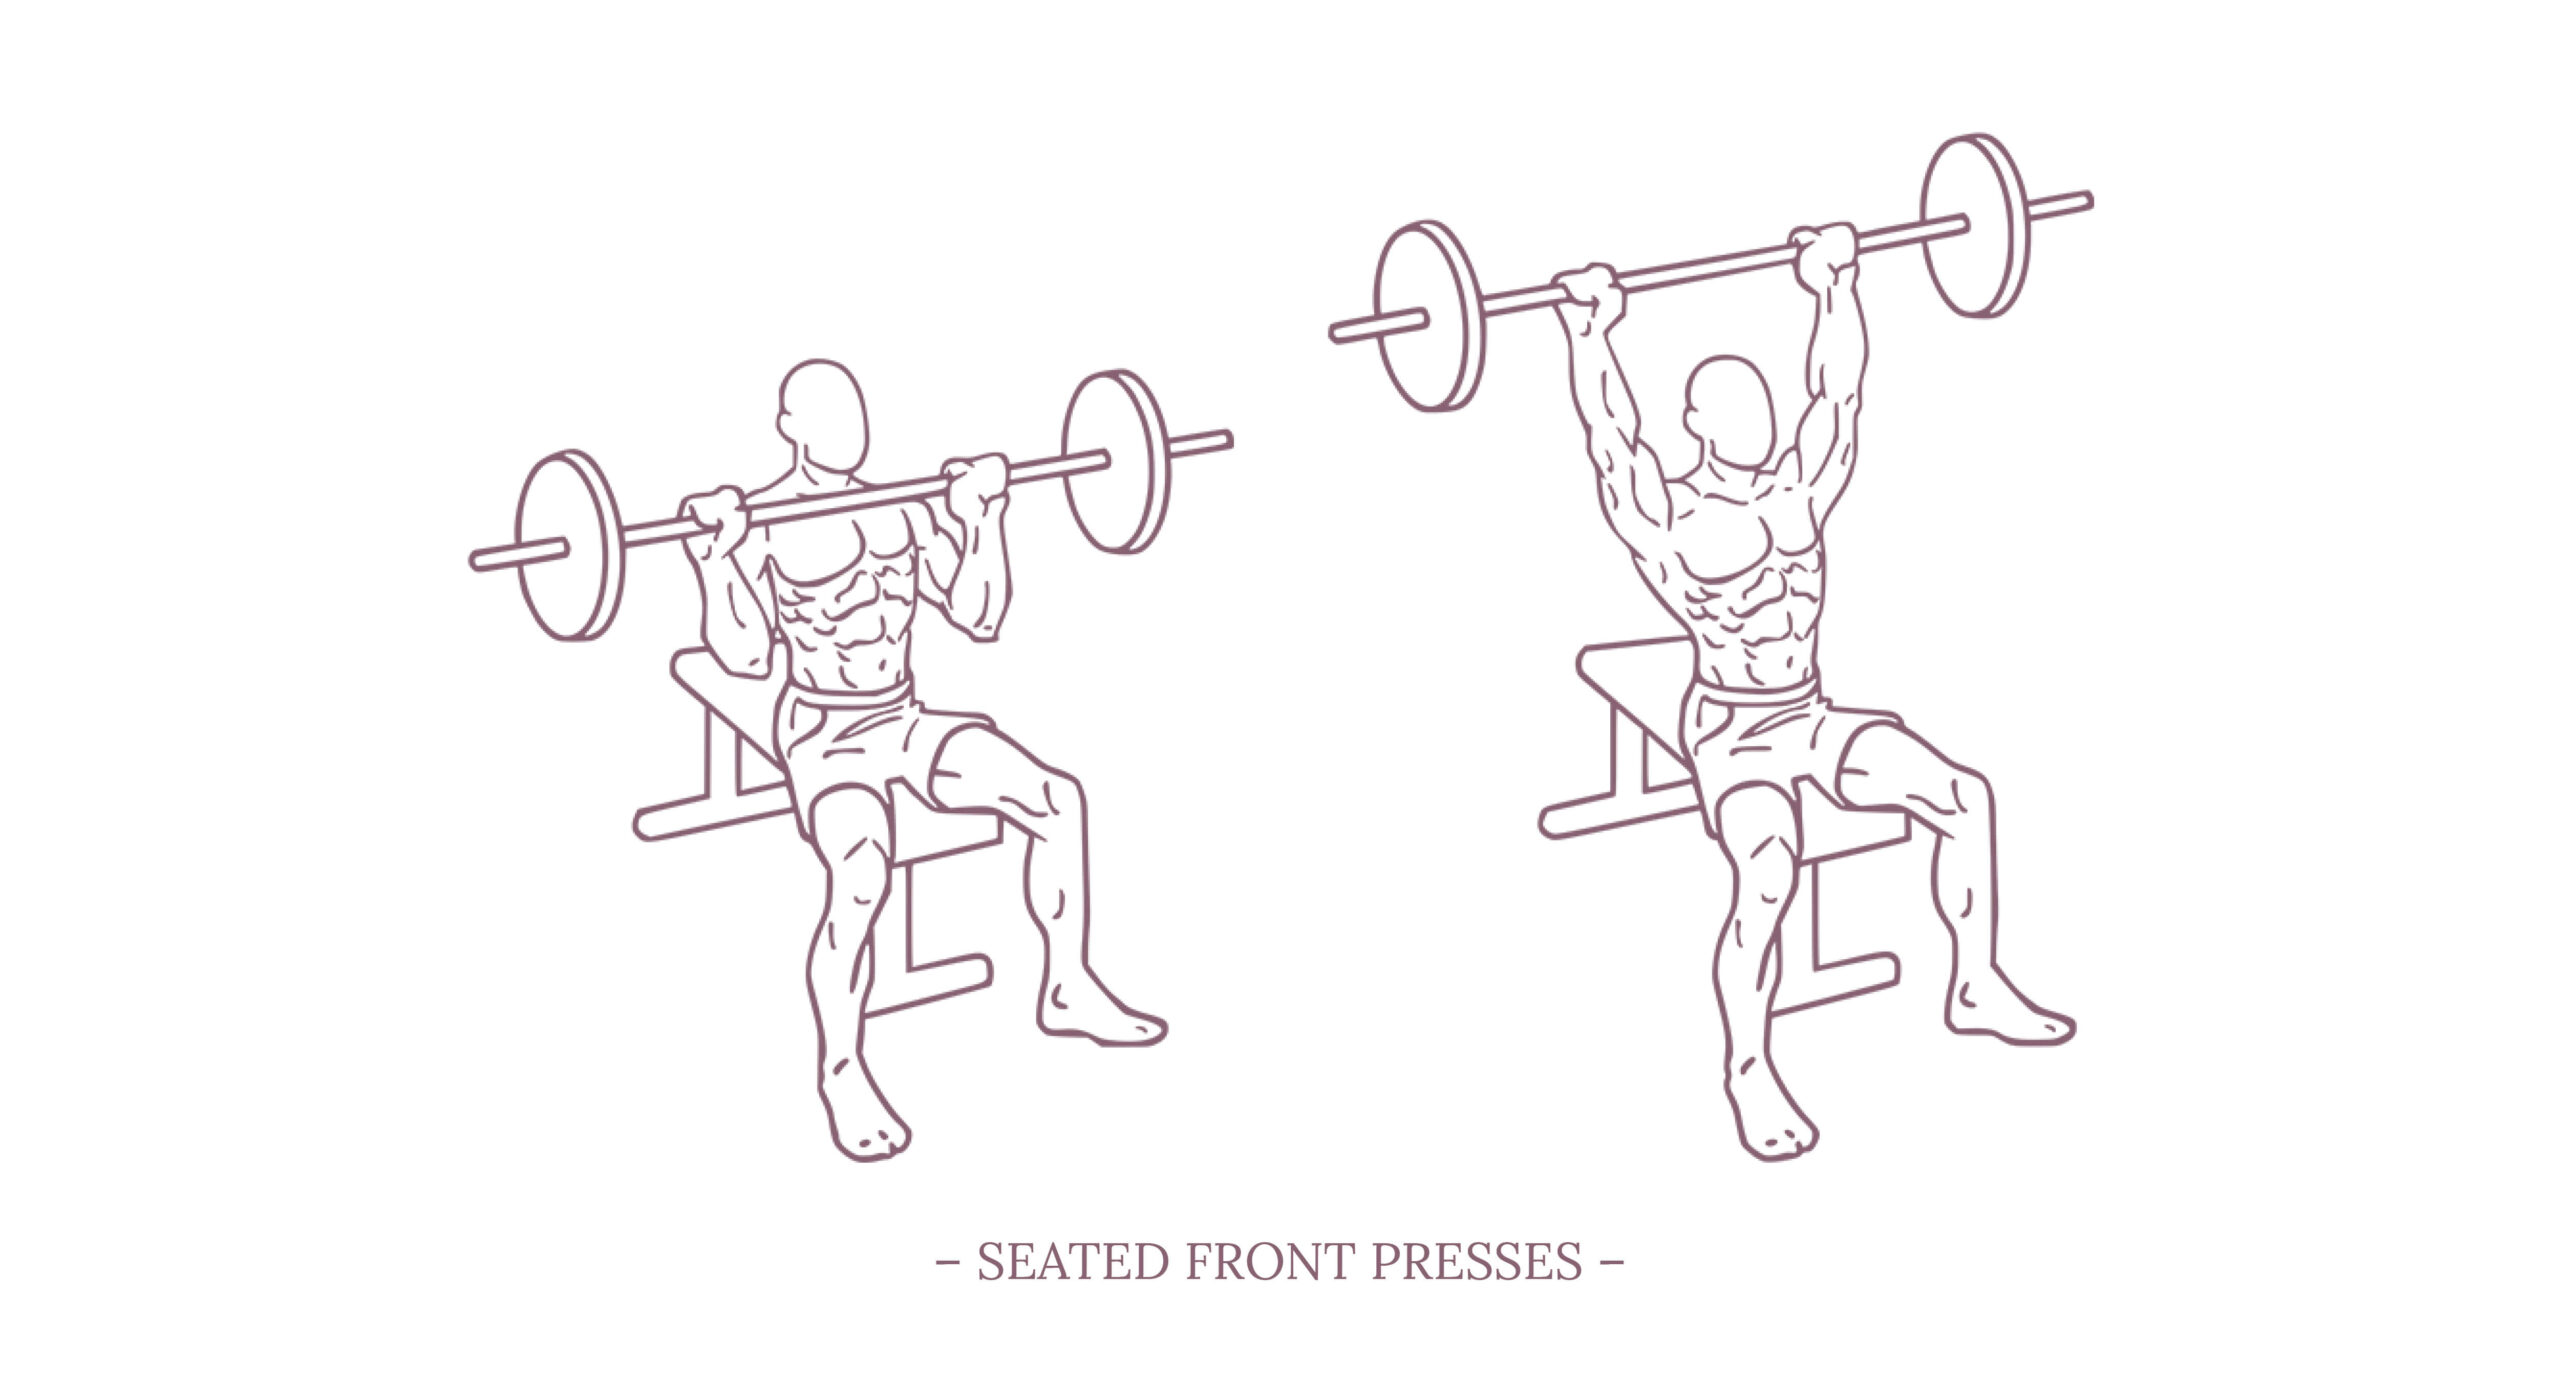 Seated Front Presses Illustration